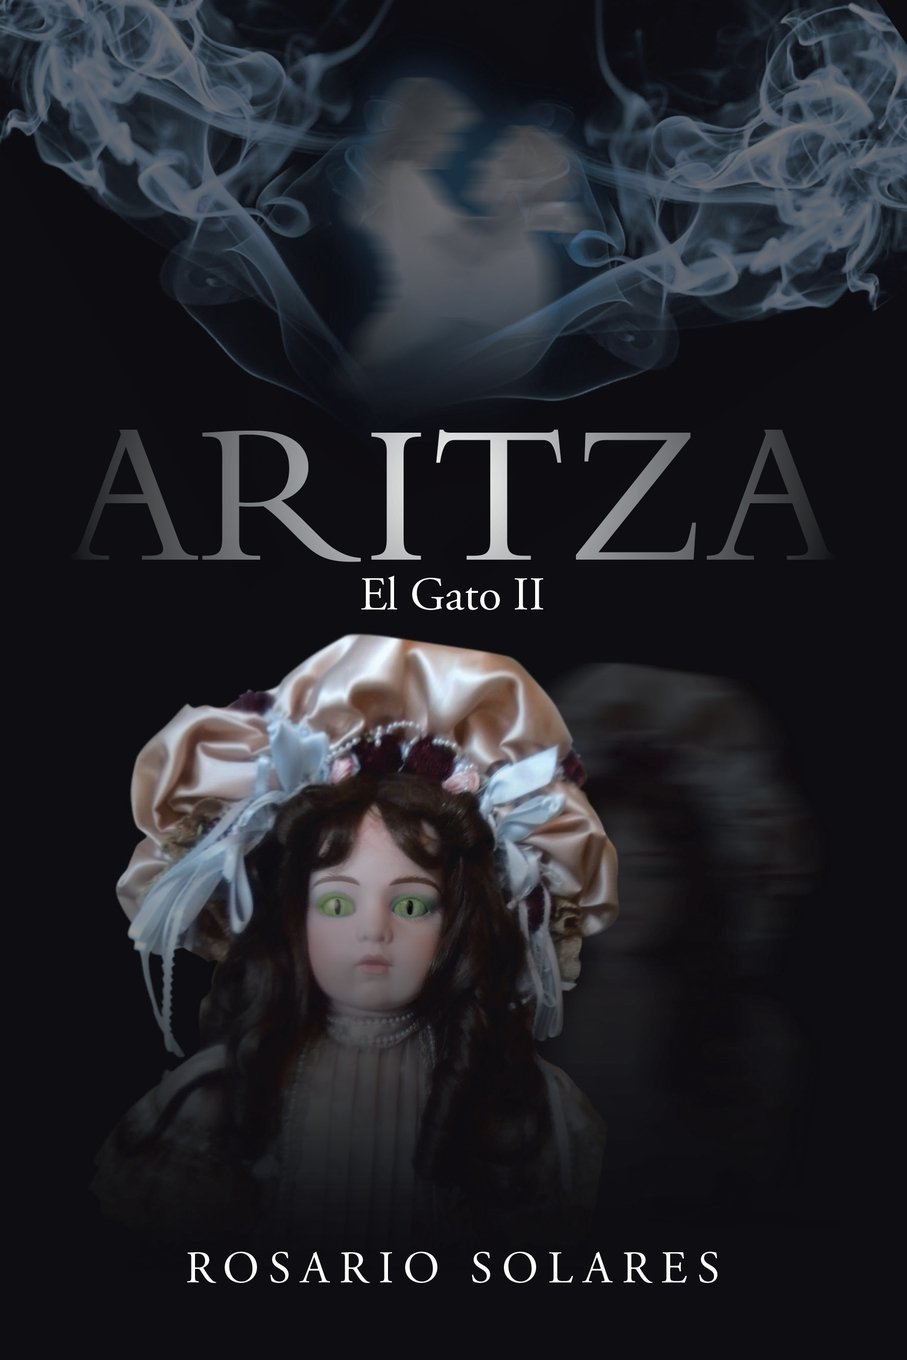 Aritza: El Gato Ii (Spanish Edition): Rosario Solares: 9781483416519: Amazon.com: Books